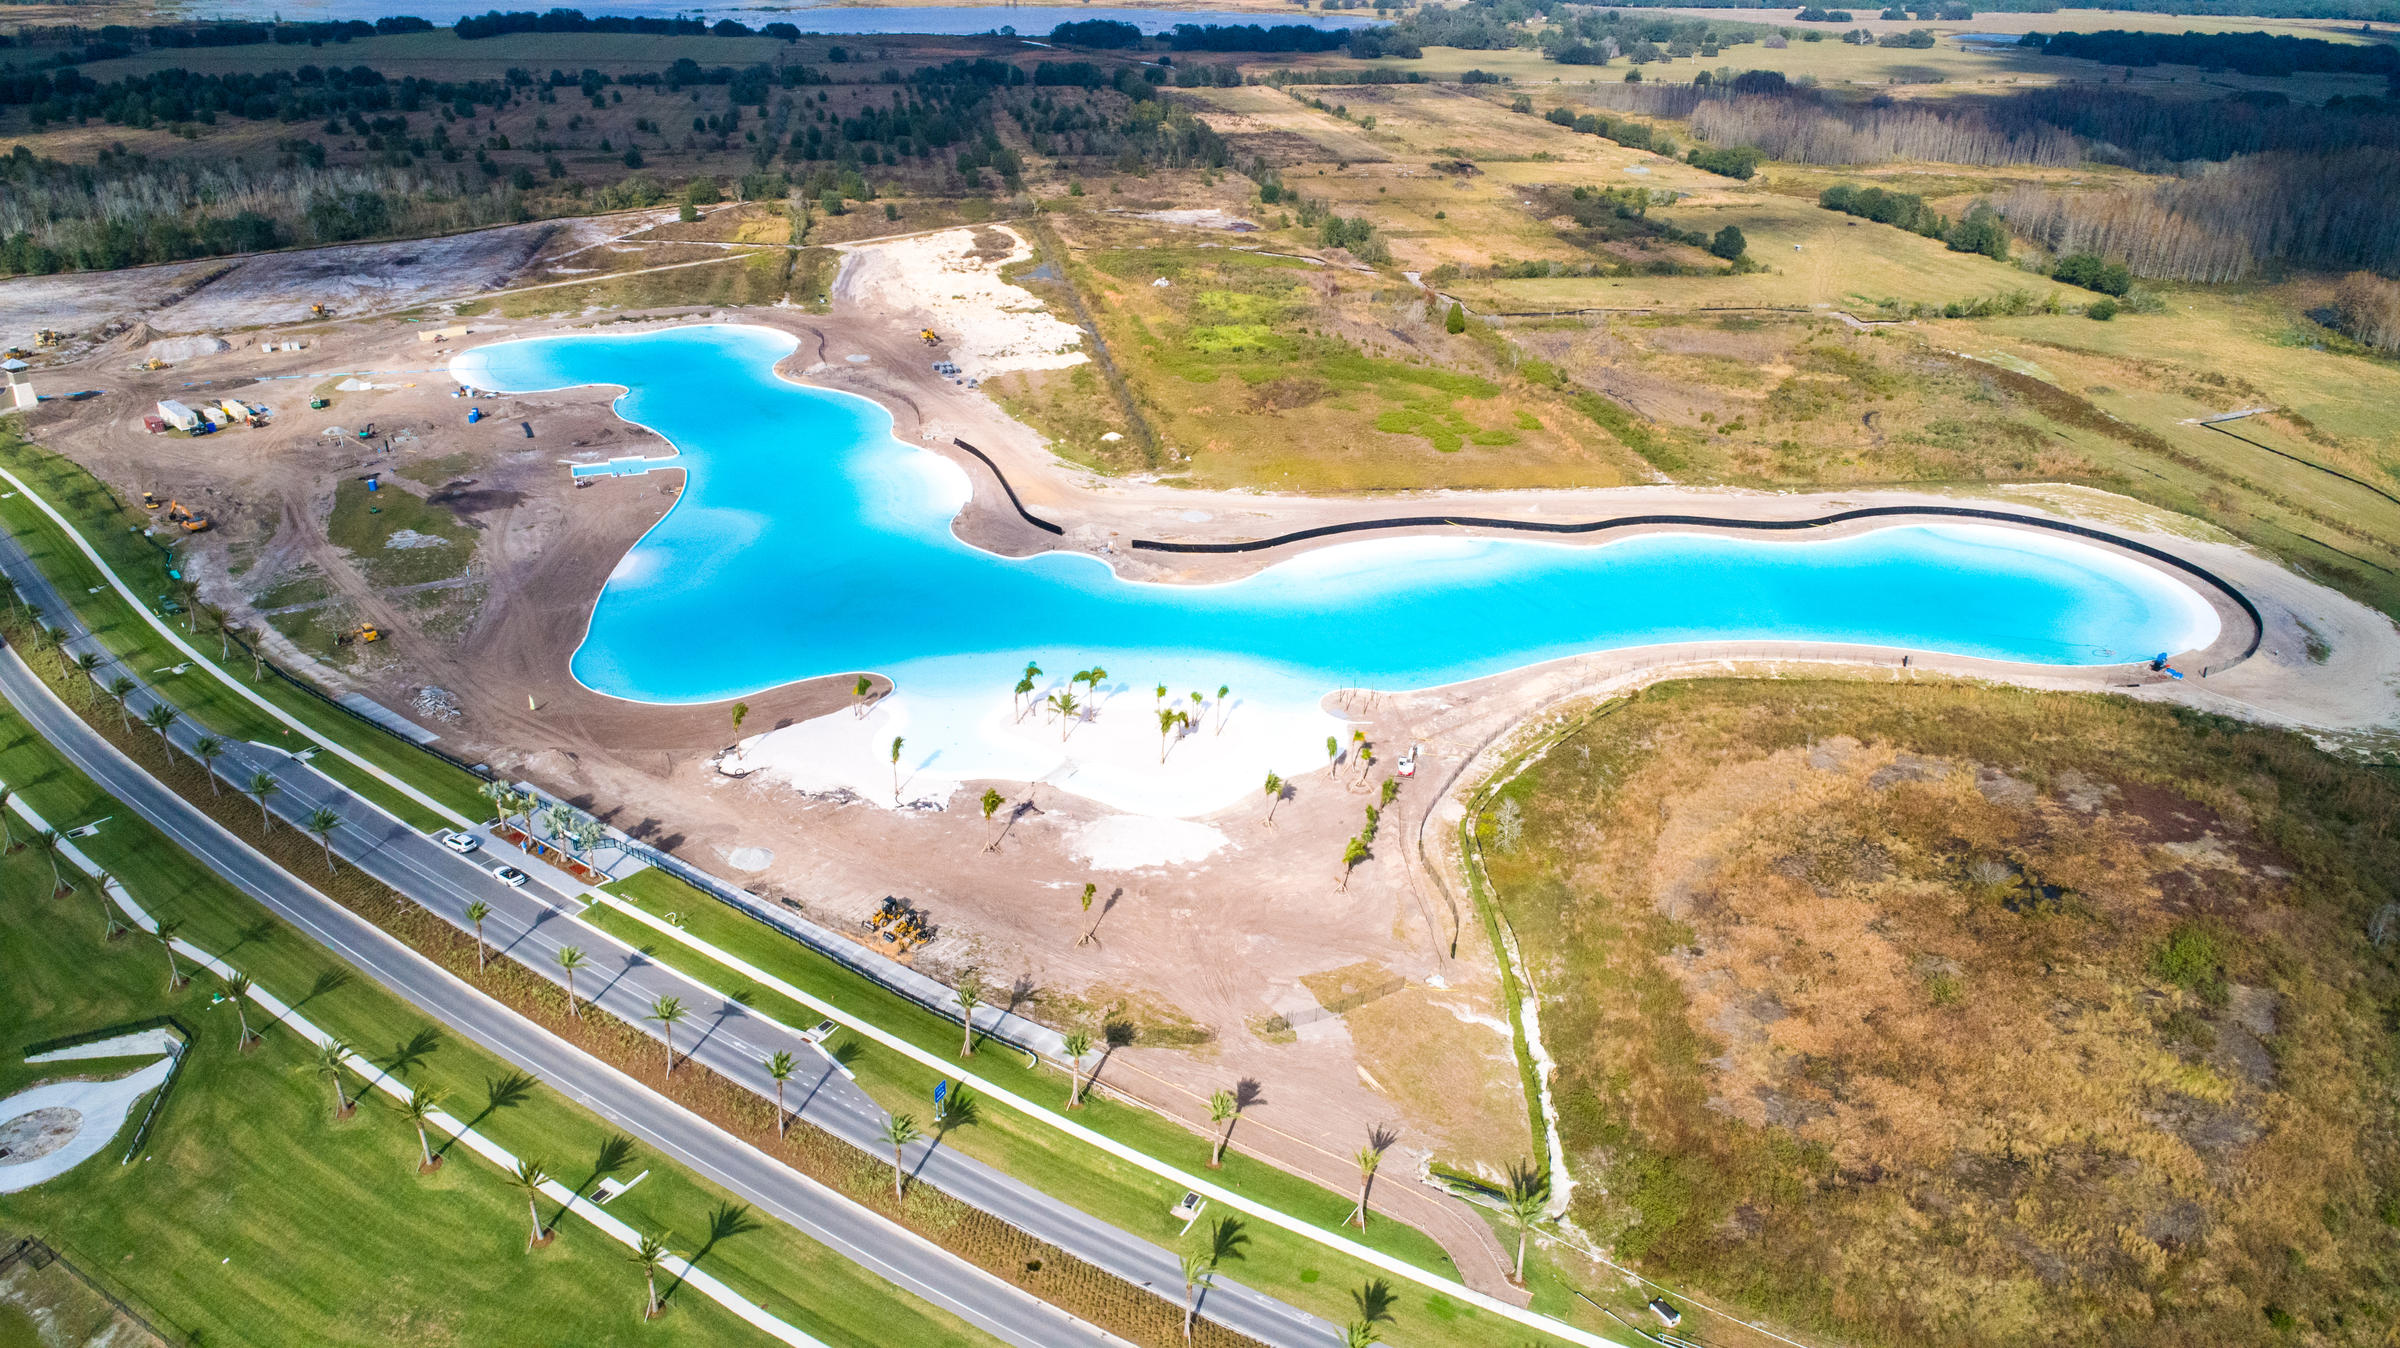 Wesley chapel growth continues with crystal lagoon wusf news for Epperson ranch homes